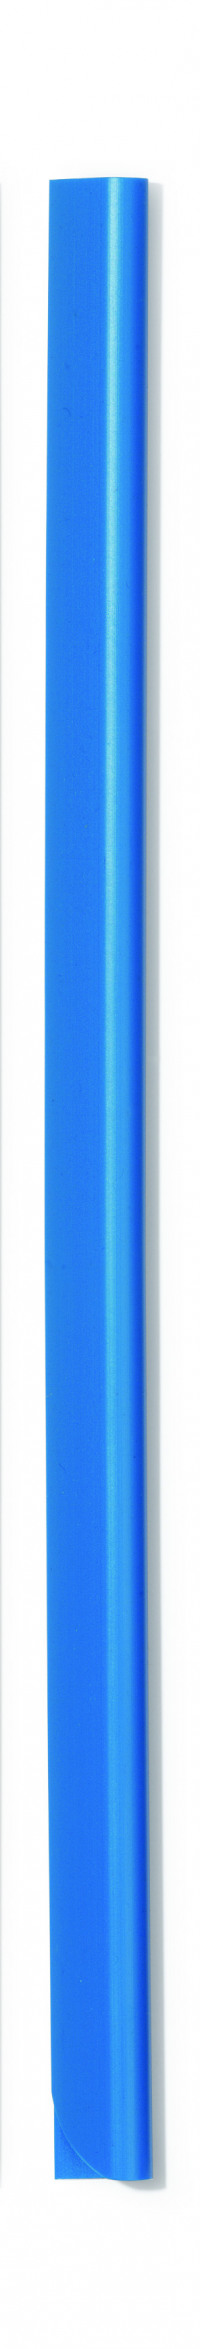 Durable A4 Blue 6mm Spine Bars (Pack of 100) 2901/06